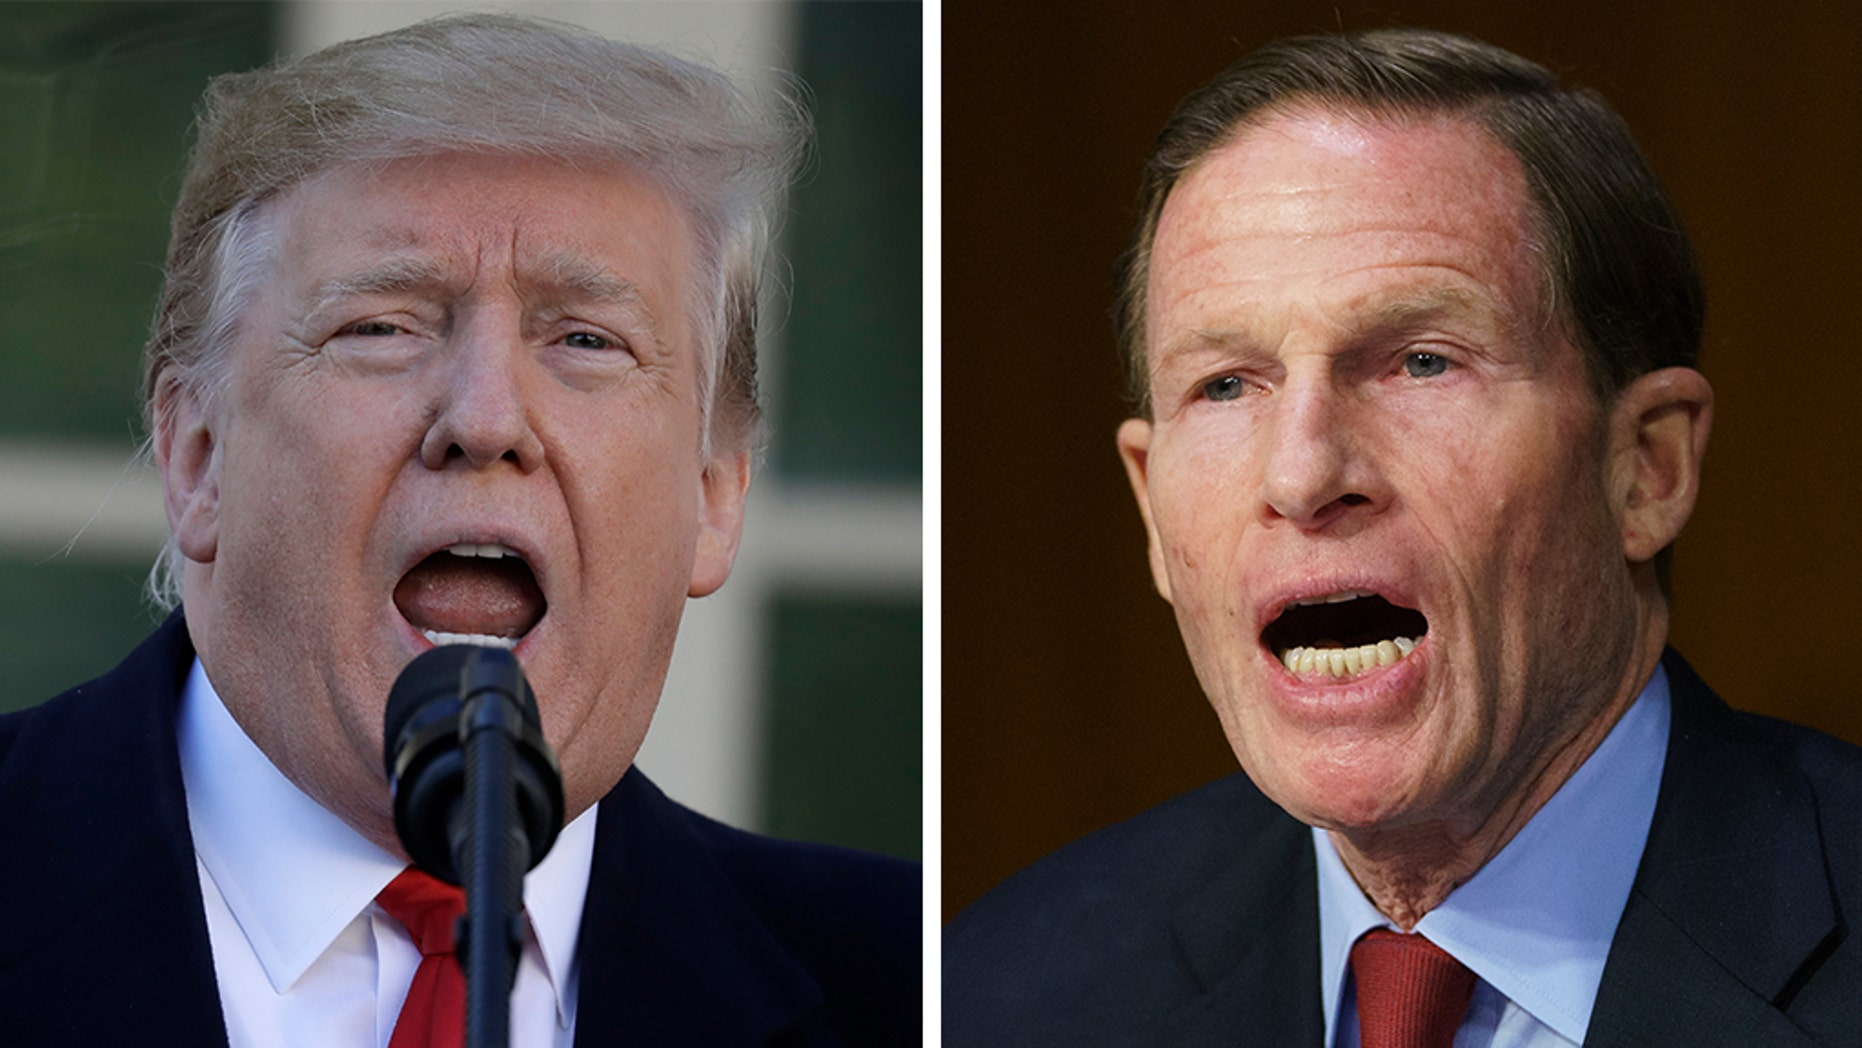 President Trump aimed in a tweet on Monday at Sen. Richard Blumenthal, D-Conn. Ab.